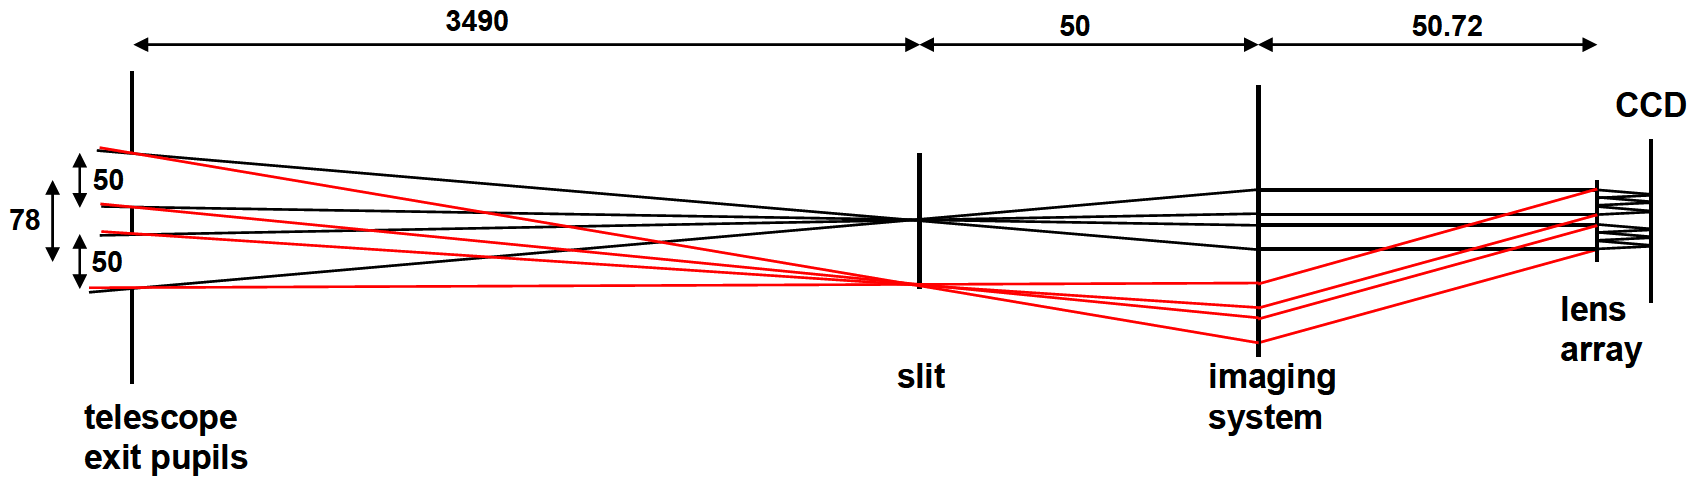 Gaia wavefront sensor. Top: schematic layout of the WFS. From left to right, the gaia exit pupils and WFS entrance slit, collimator, microlens array and focal plane can be seen. Middle: optical design layout. The second fold mirror (FM2) deflects the incoming light to a beamsplitter (BS), where the reference signal from the optical fibres can be injected. The first fold mirror (FM1) sends the light to the collimator M1, which produces an image of the output pupil at the location of the microlens array (MLA). Finally, the lenslet images are projected onto the same focal plane used for the Gaia astrometric field. Bottom: mechanical overview of the WFS. Courtesy TNO